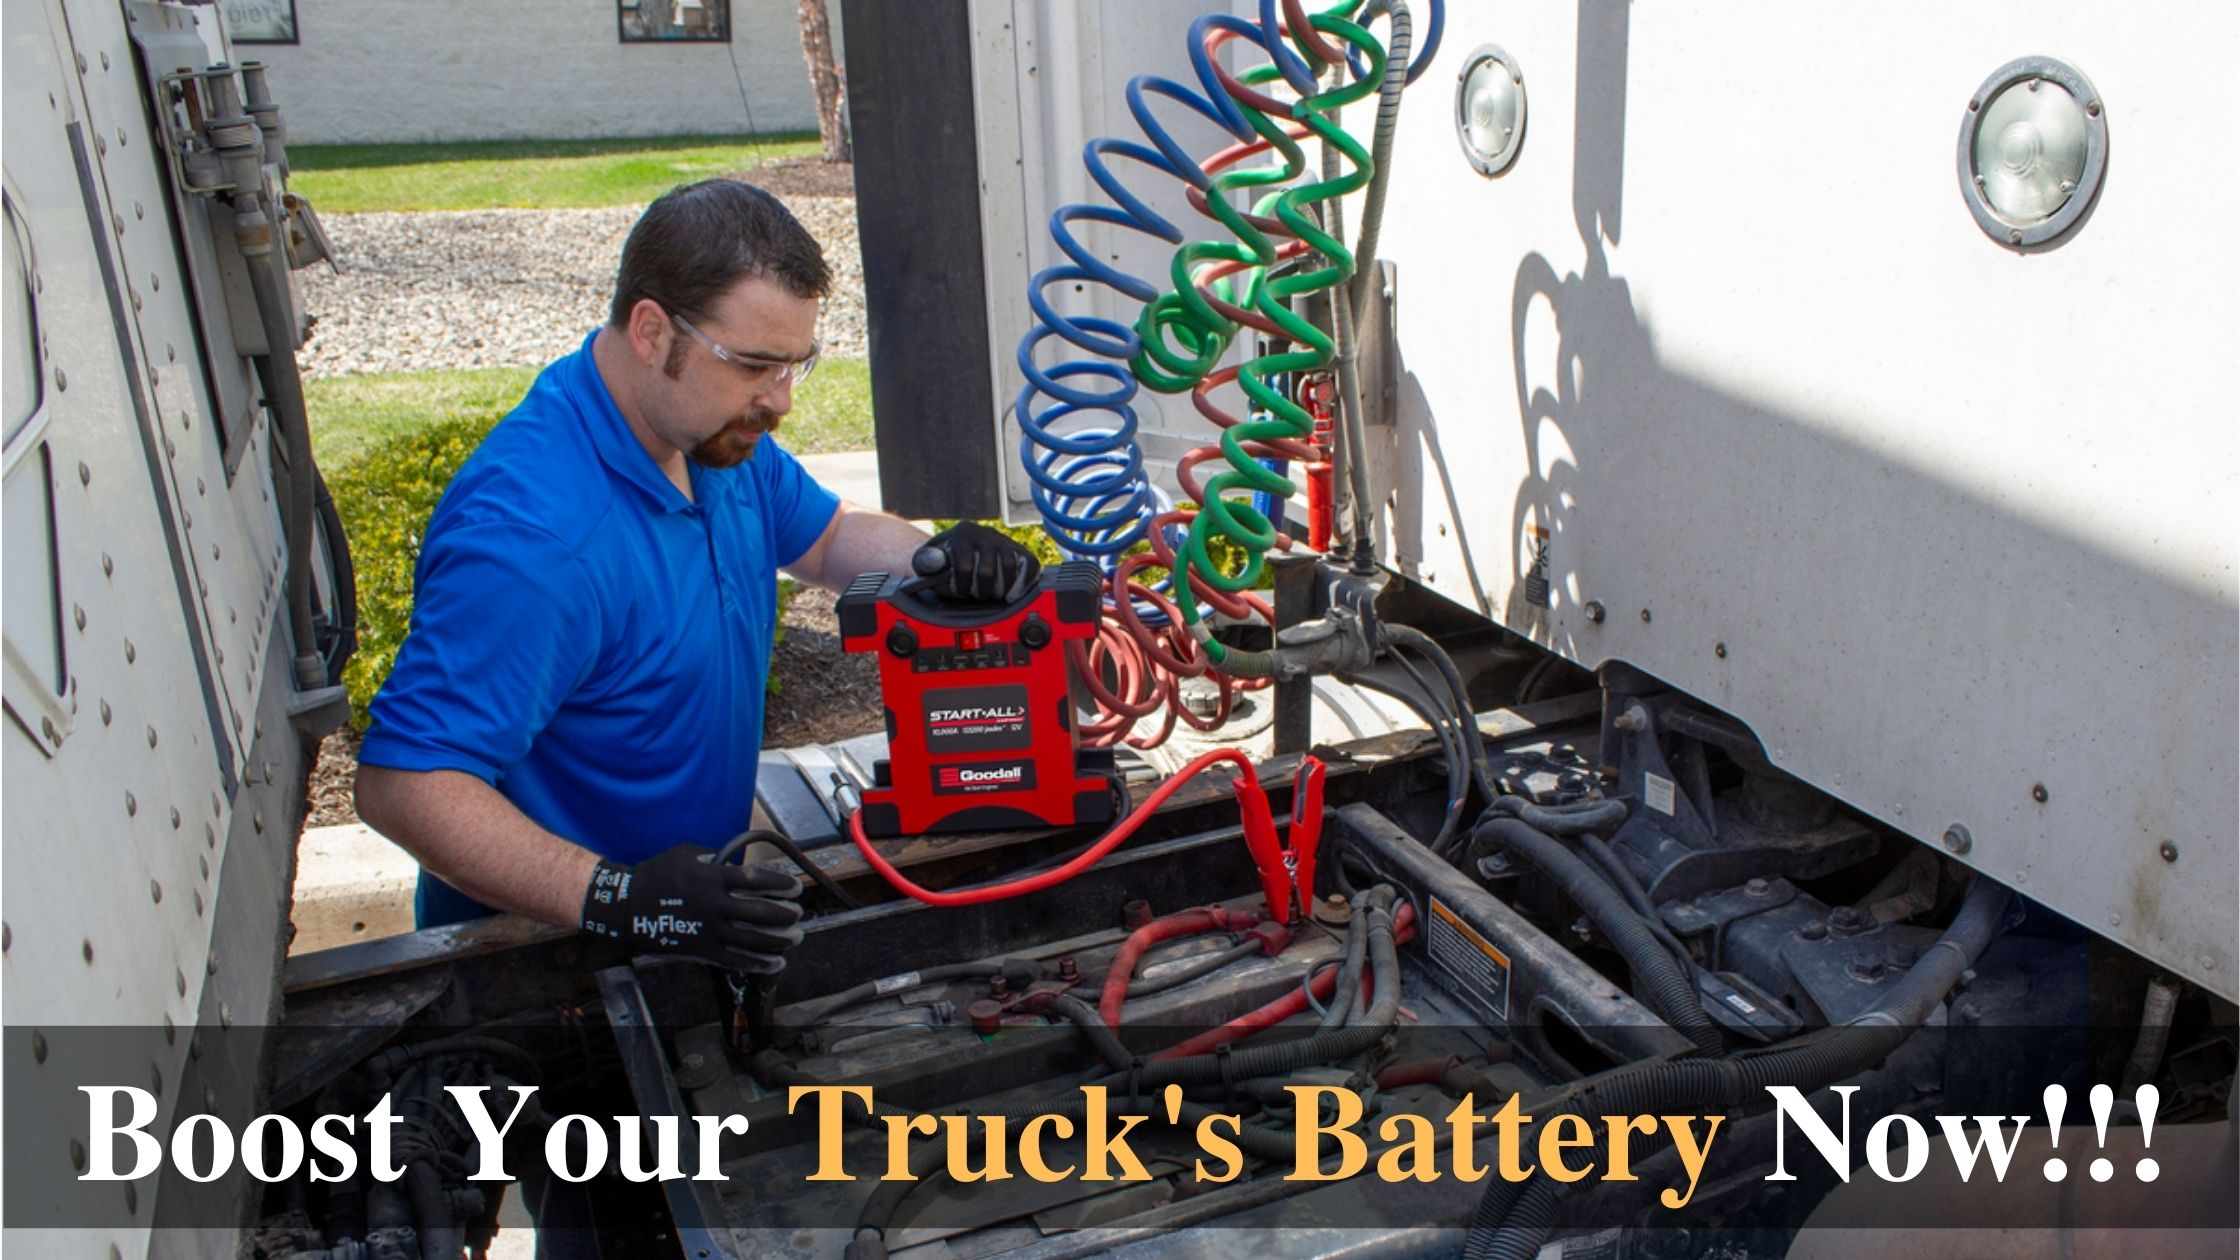 Boost Your Truck's Battery Now!!!